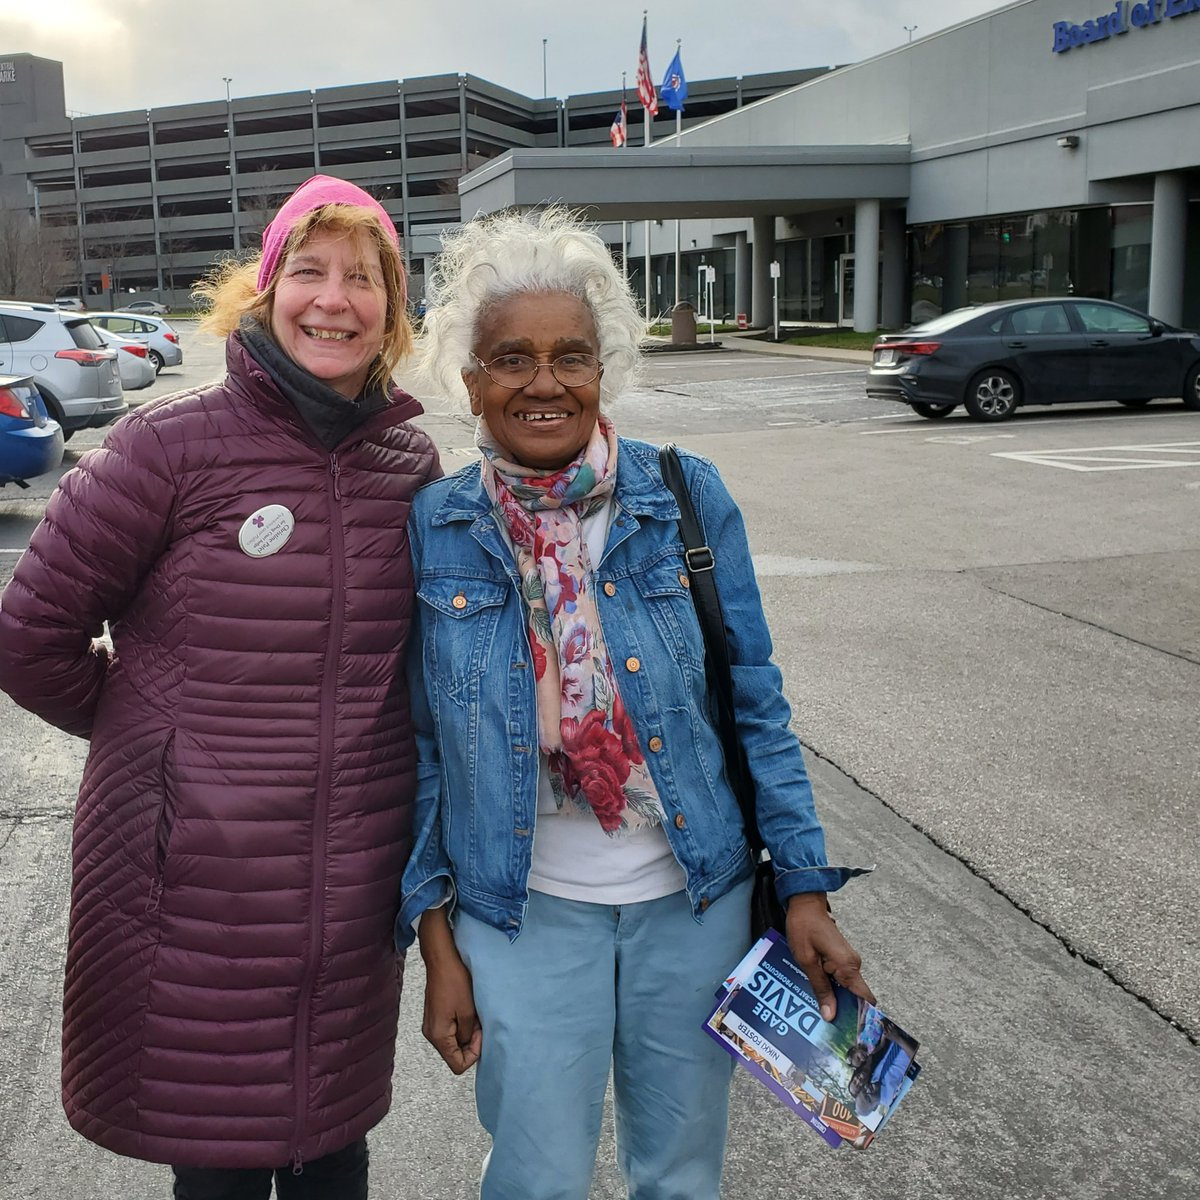 Seeing Roro at the Board of Elections warmed my heart on a cold day!  #theresanarmyrisingup #ilovemyfamily  #getoutandvote #patel4judgepic.twitter.com/PKB2BUFWgn – at Hamilton County Board Of Elections